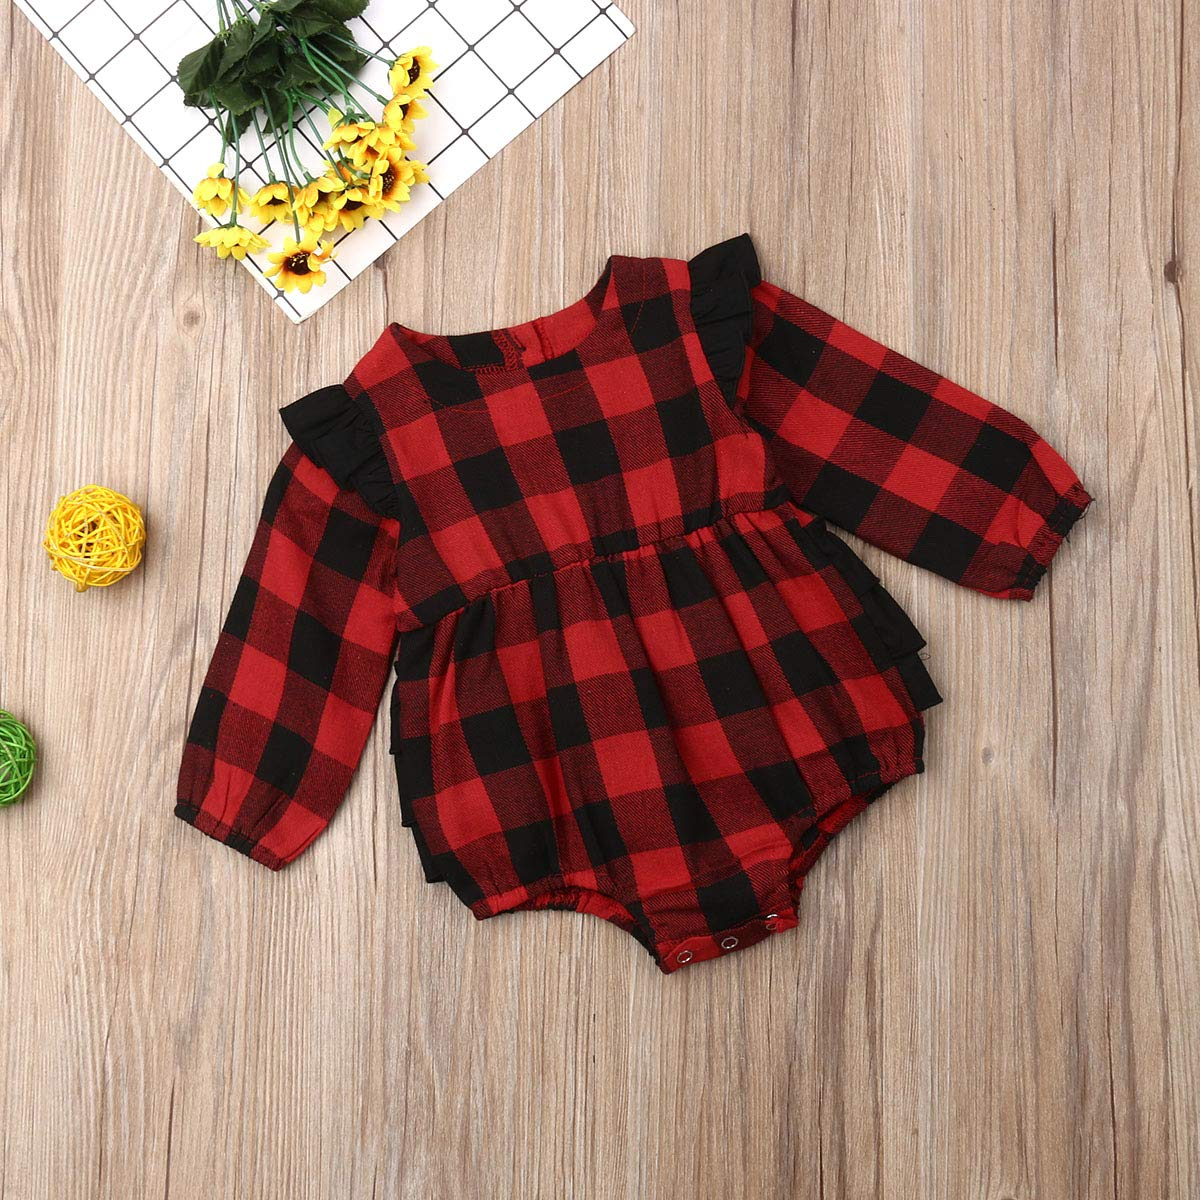 LuLuBaby Baby Boy Girl Flannel Print Plaid Shirt Long Sleeve Button Romper Bodysuit Clothes